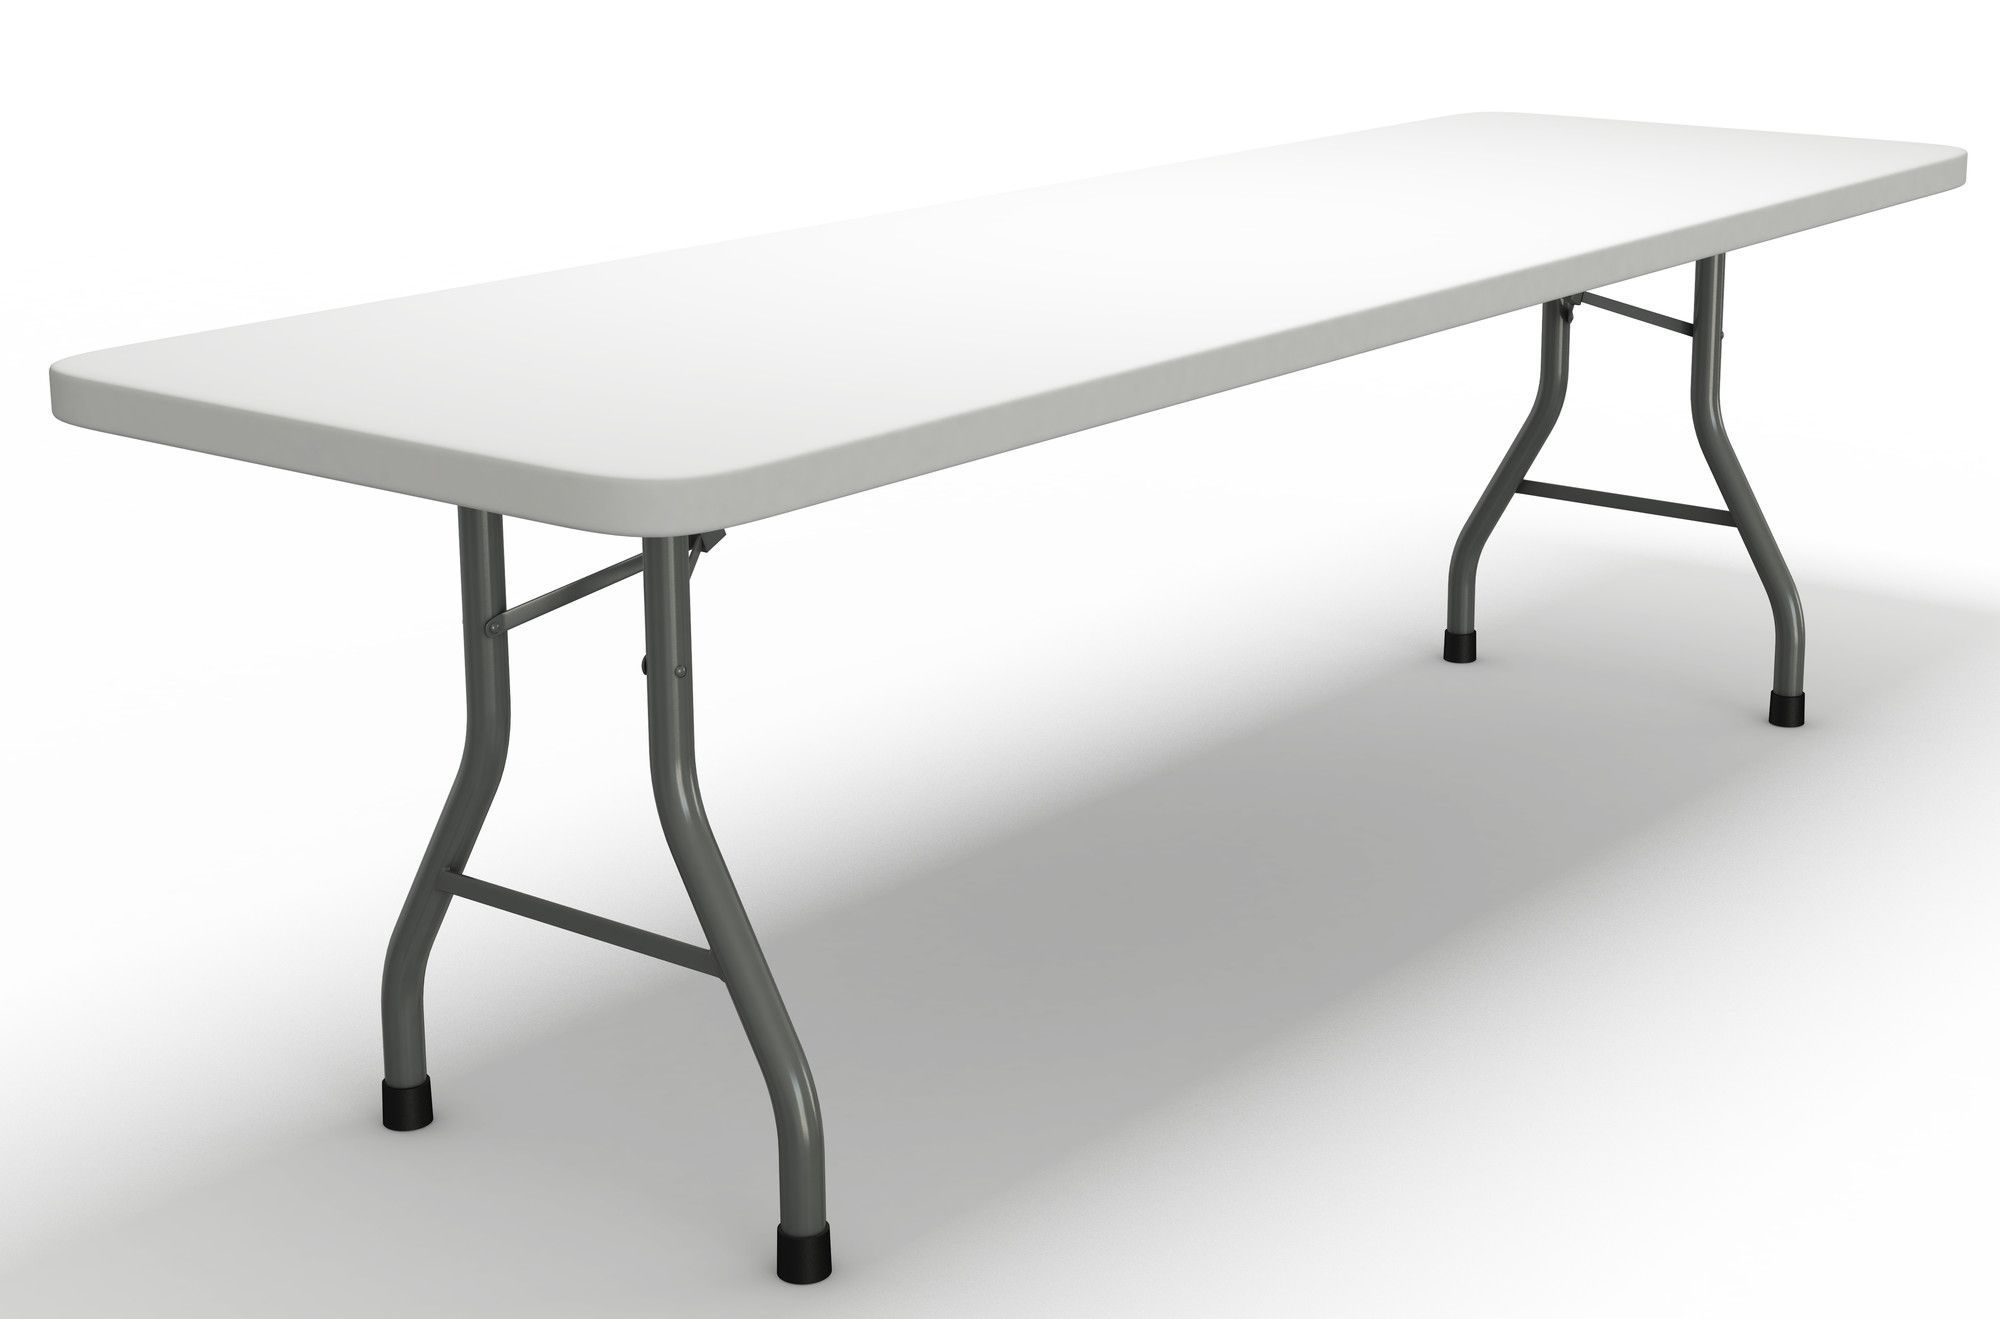 Event Series Rectangular Folding Table Products Table Table